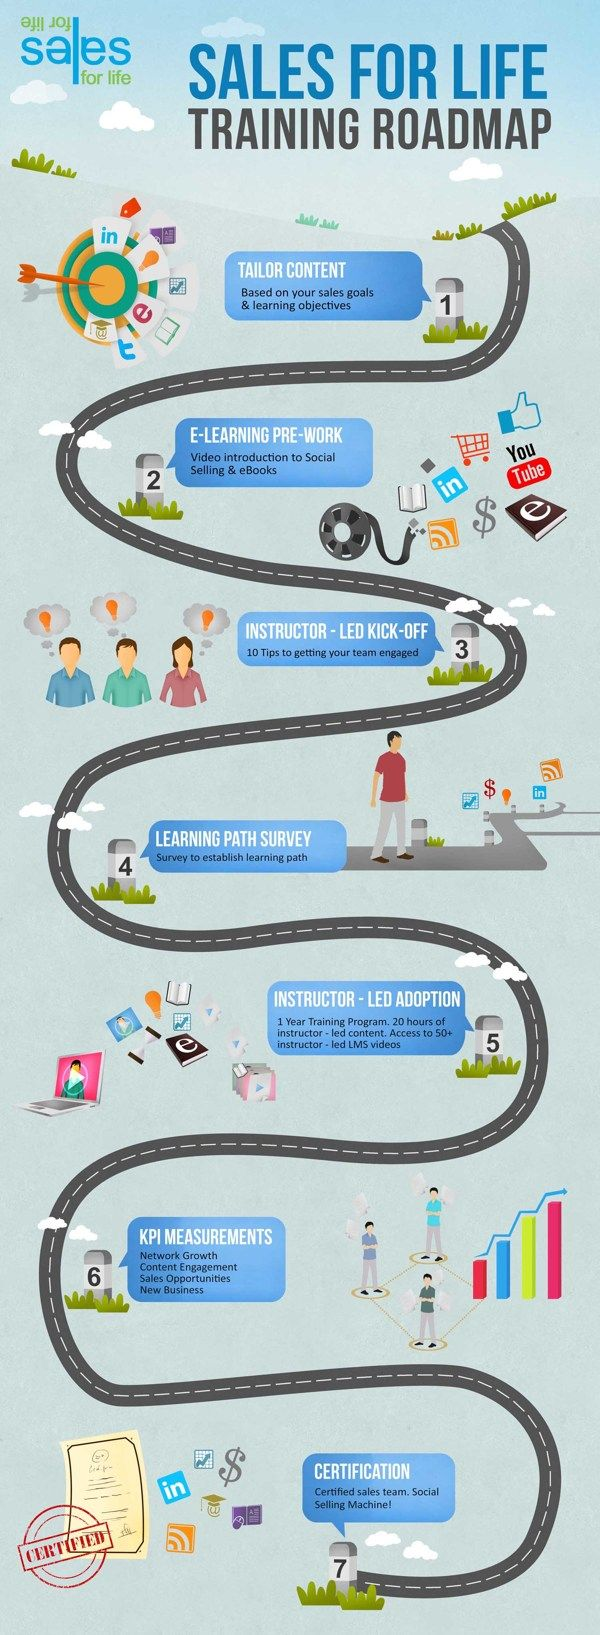 sales training roadmap infographic by mgl media via behance